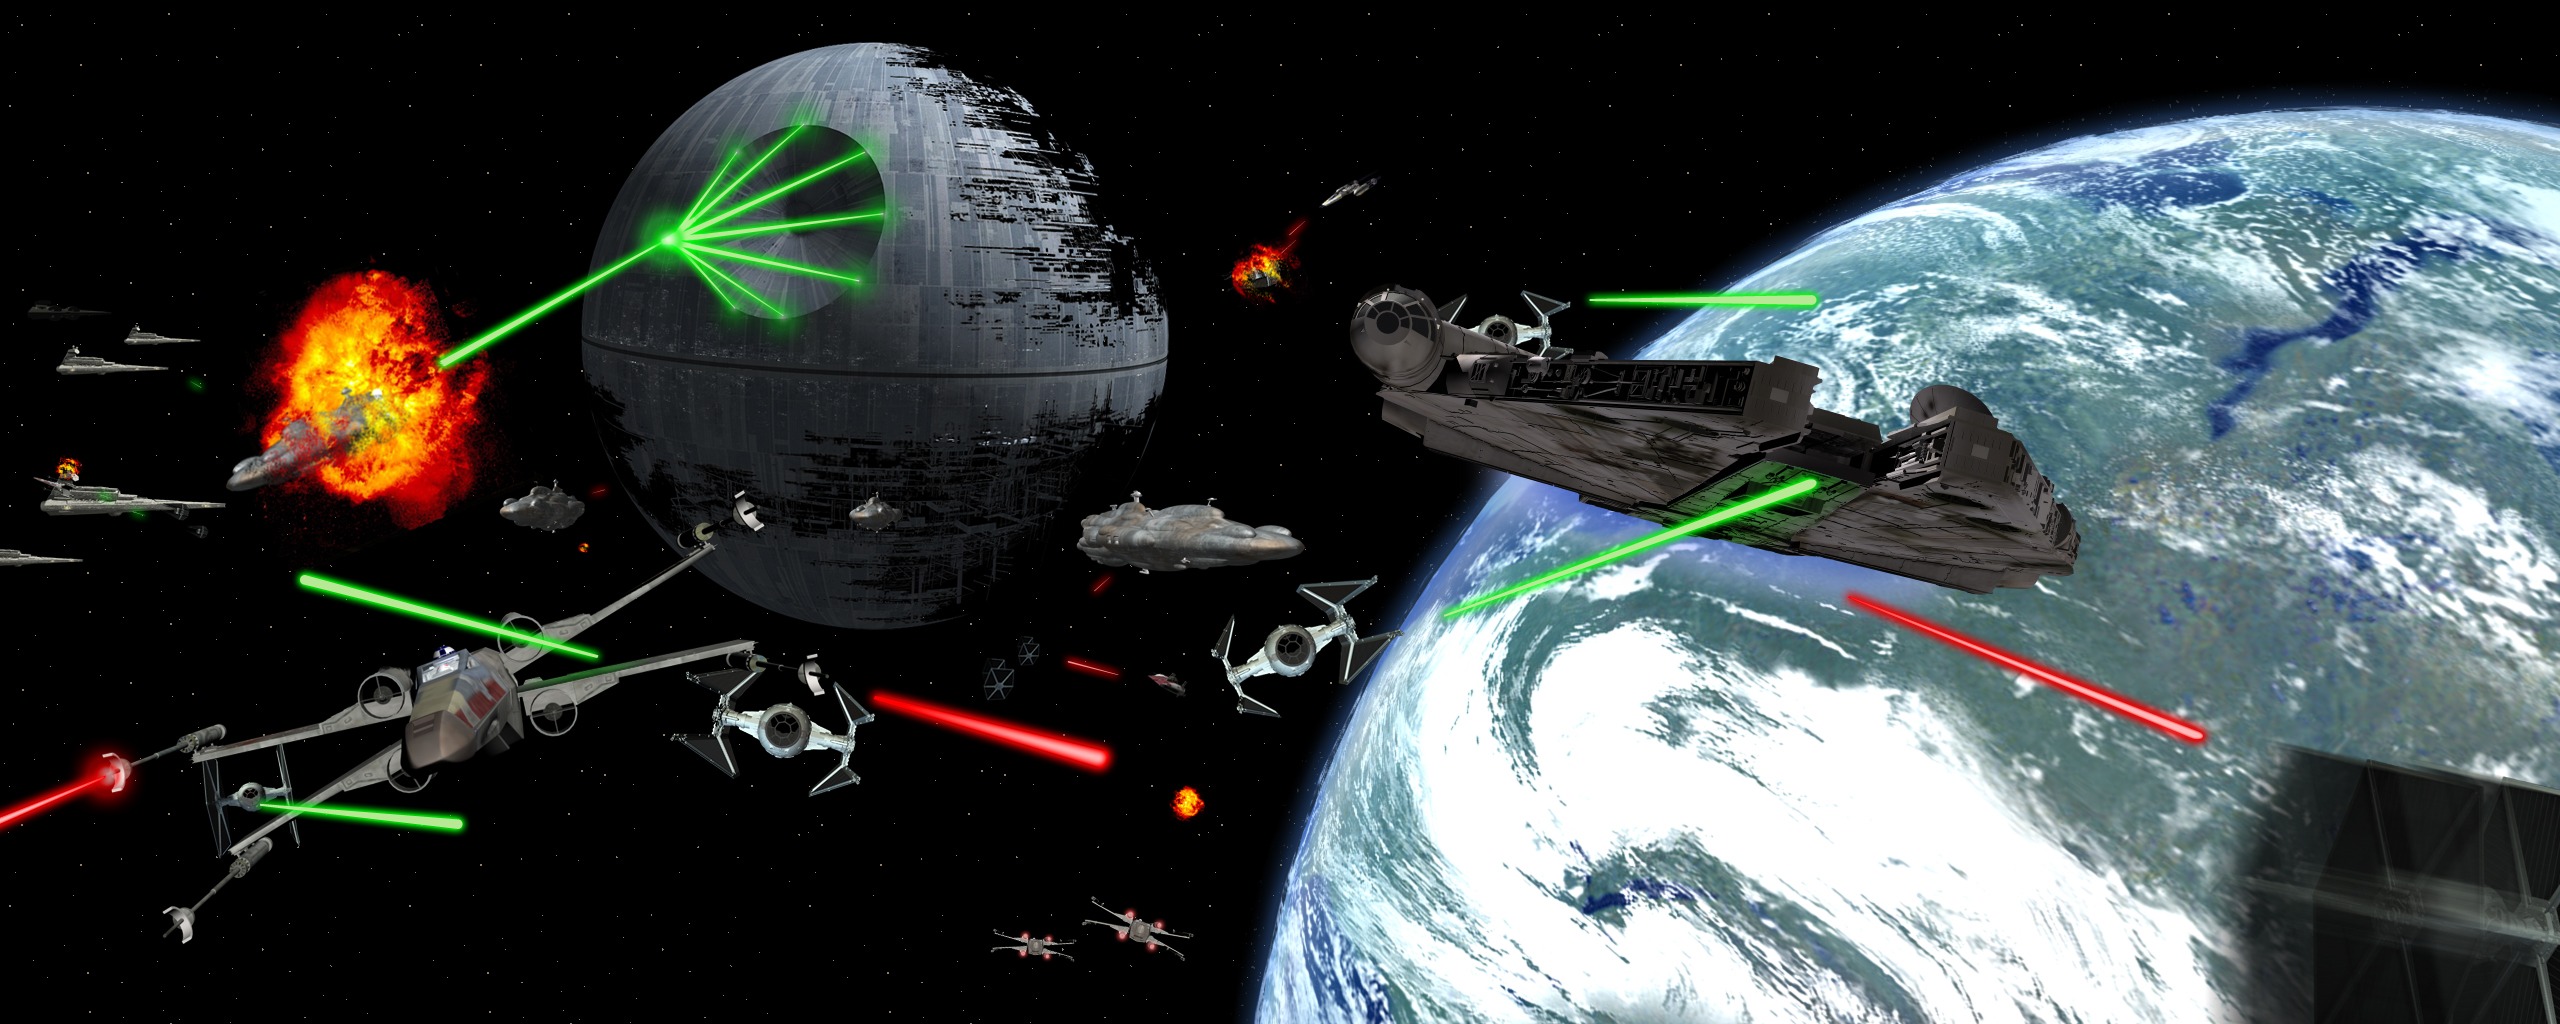 Free Download 50 Star Wars Space Battle Wallpaper On